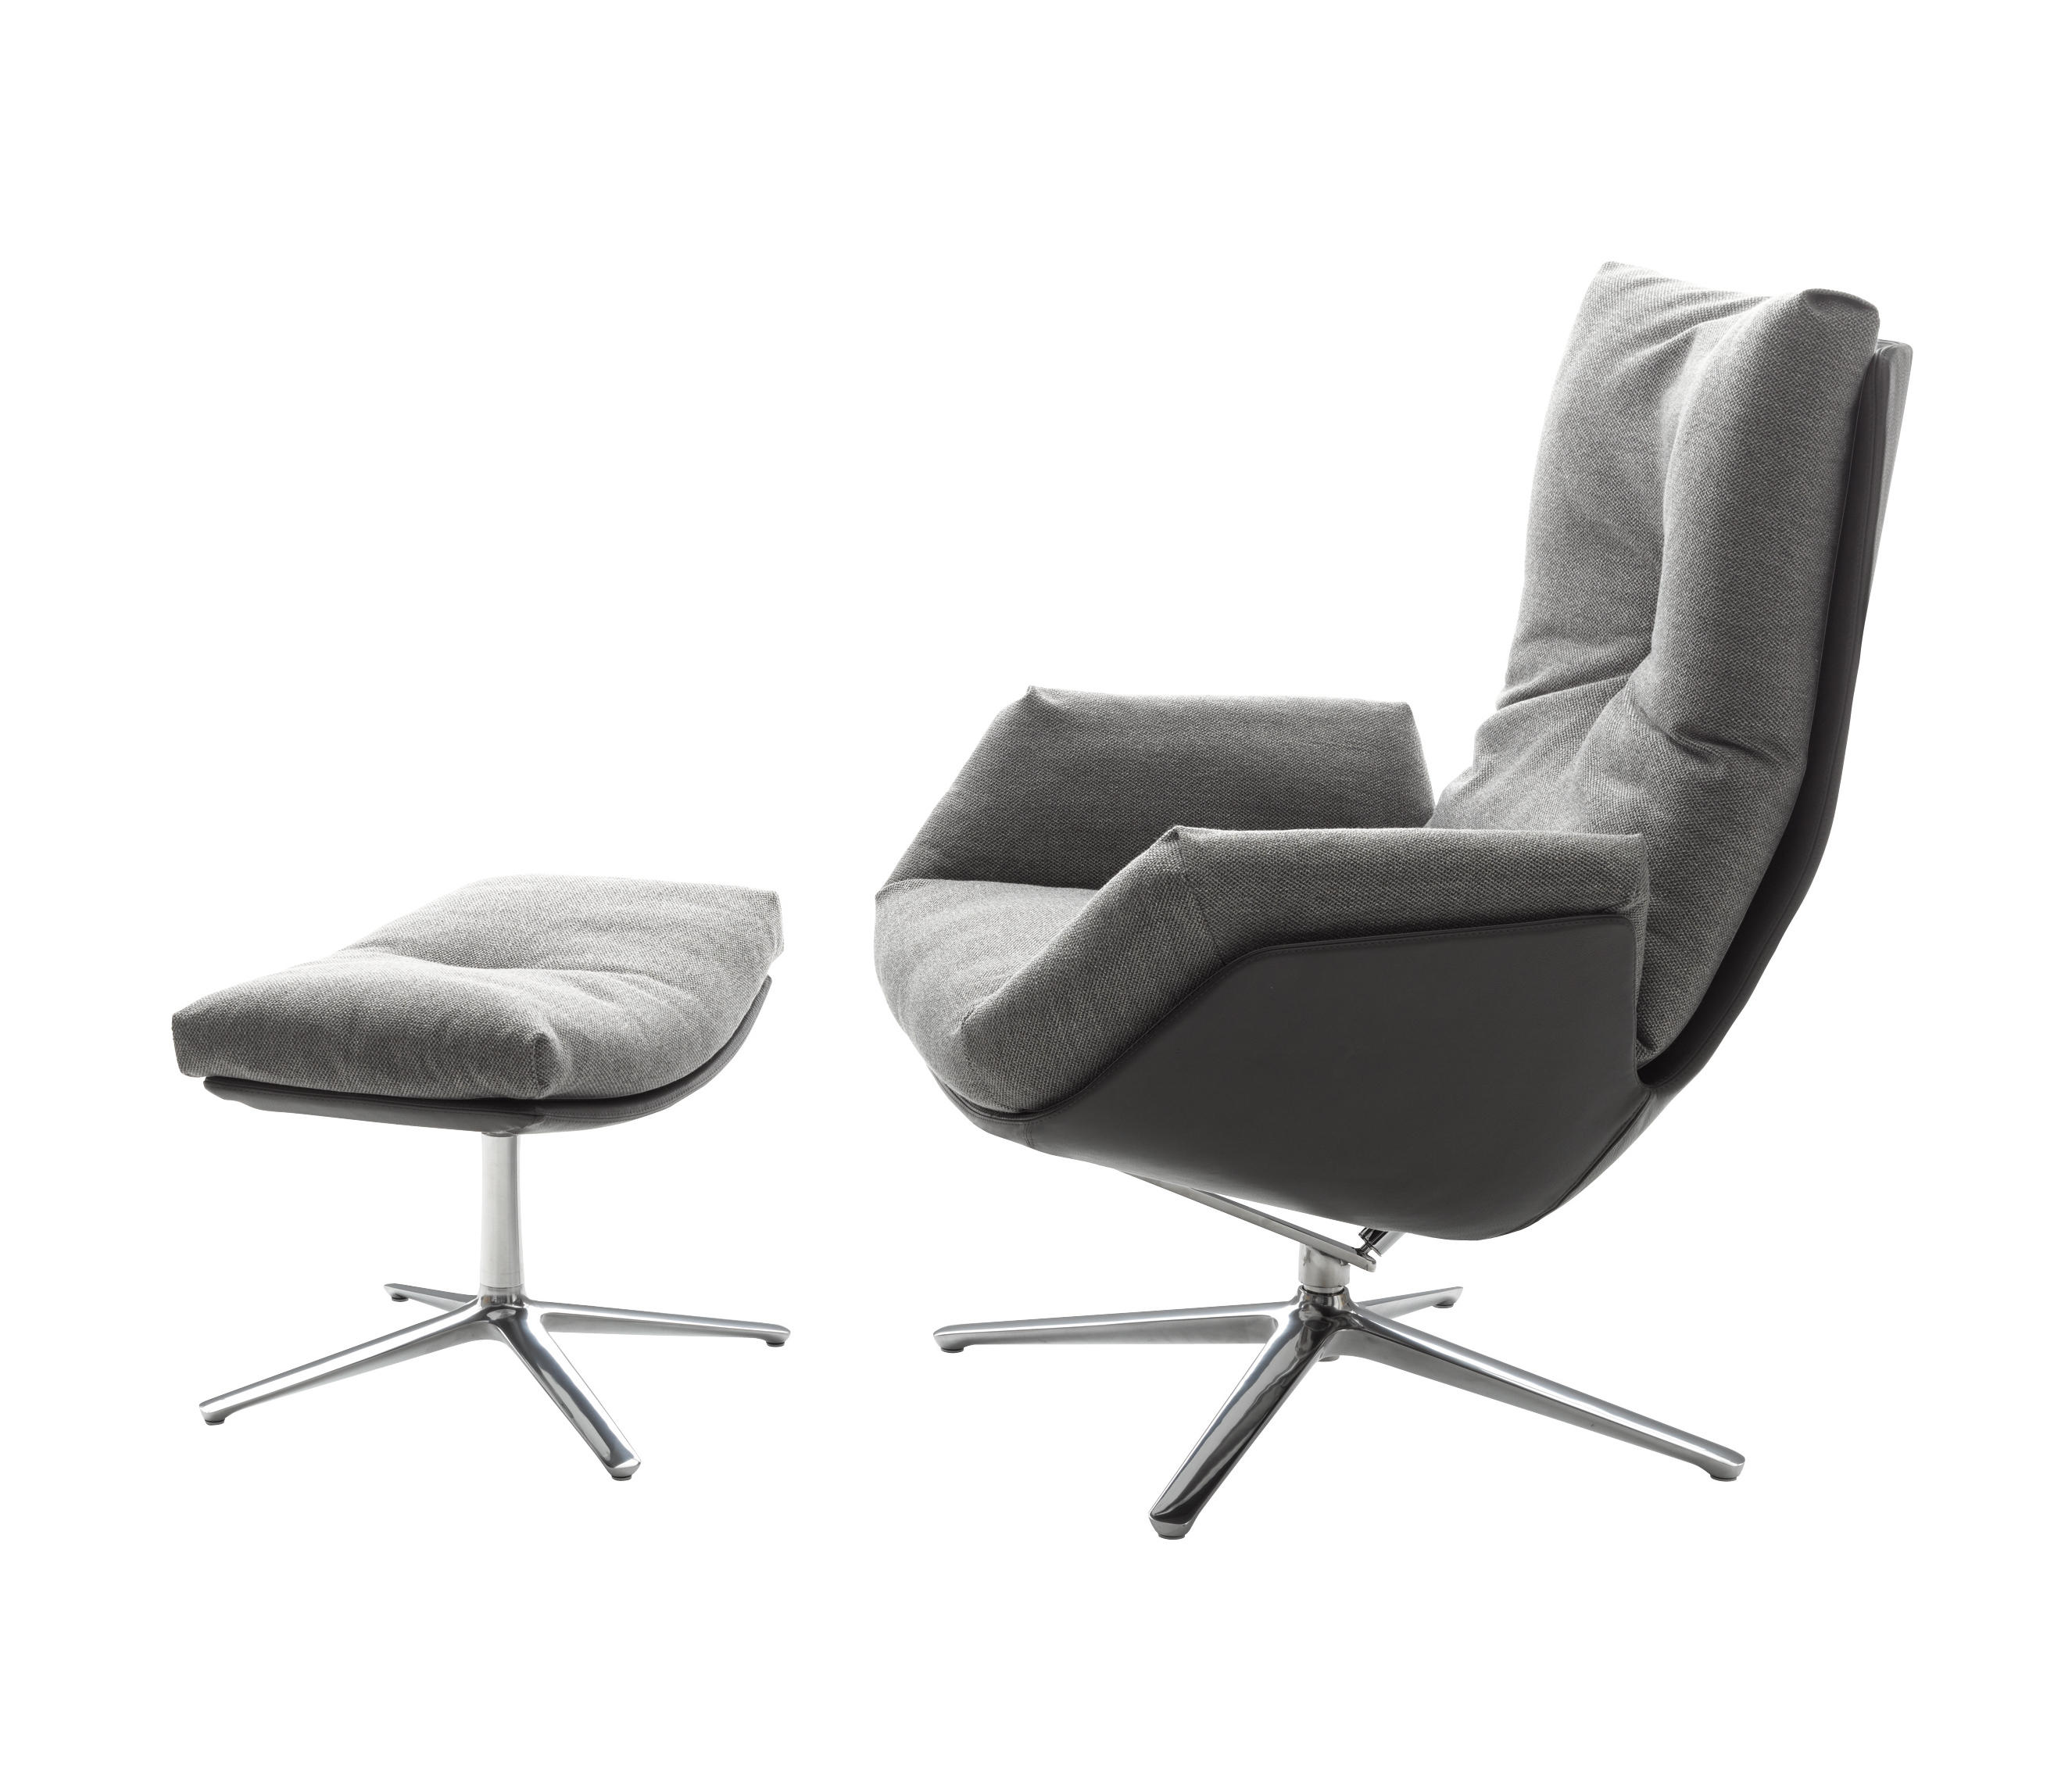 Cordia Lounge Sessel Kaufen Cordia Lounge Lounge Chairs From Cor Architonic